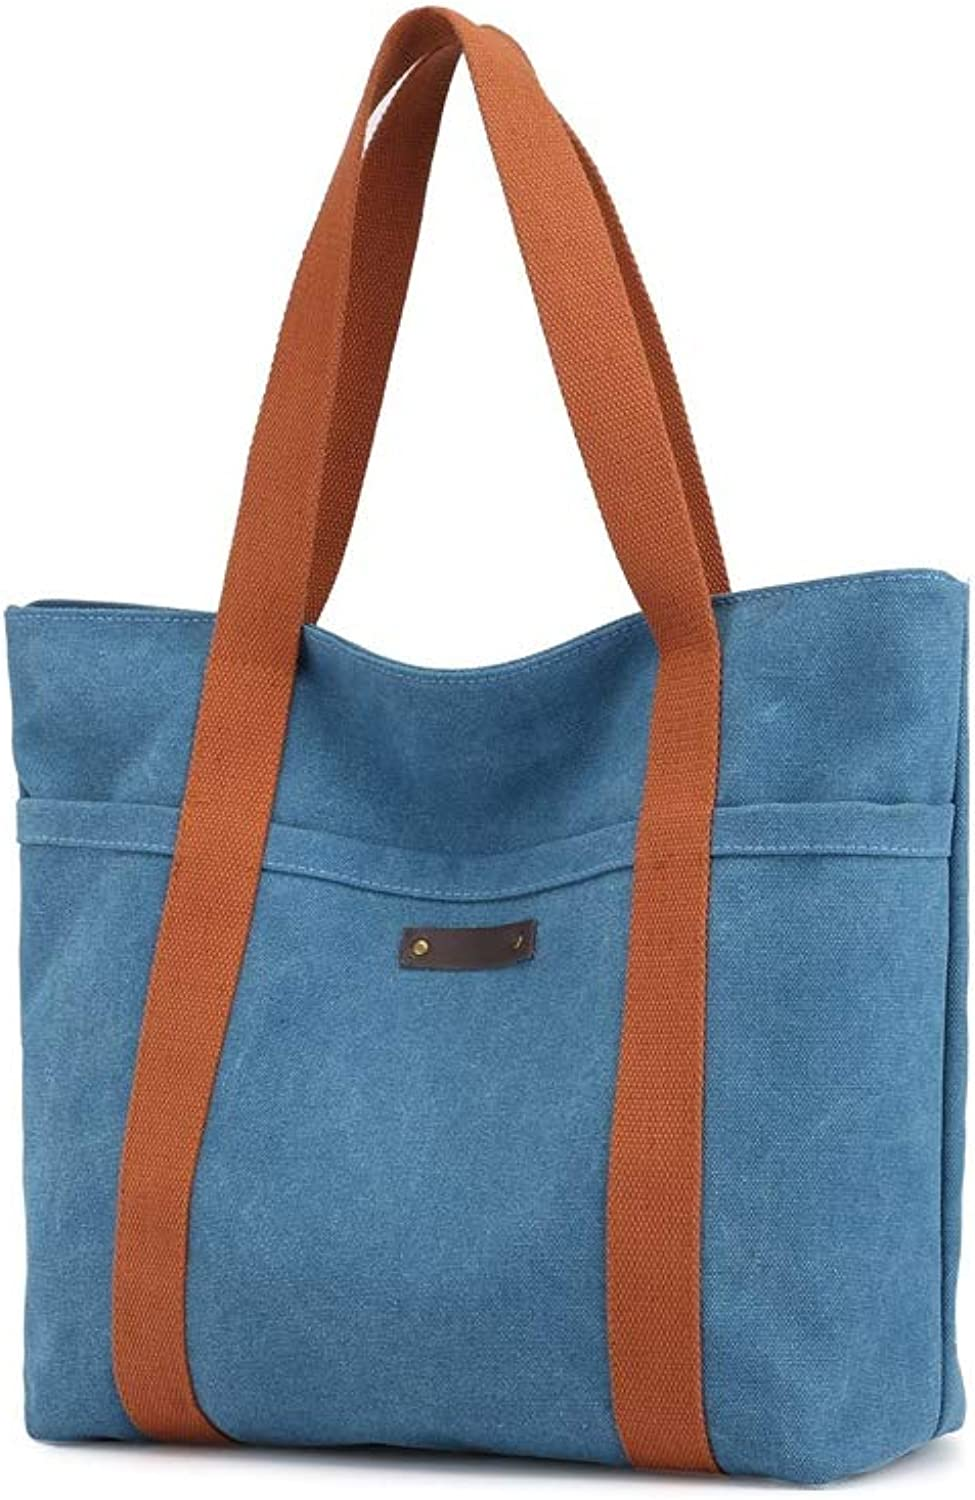 NDYE Canvas Women Handbags Solid Lady Casual Totes Female Shoulder Bag Large Capacity Shopping Bag